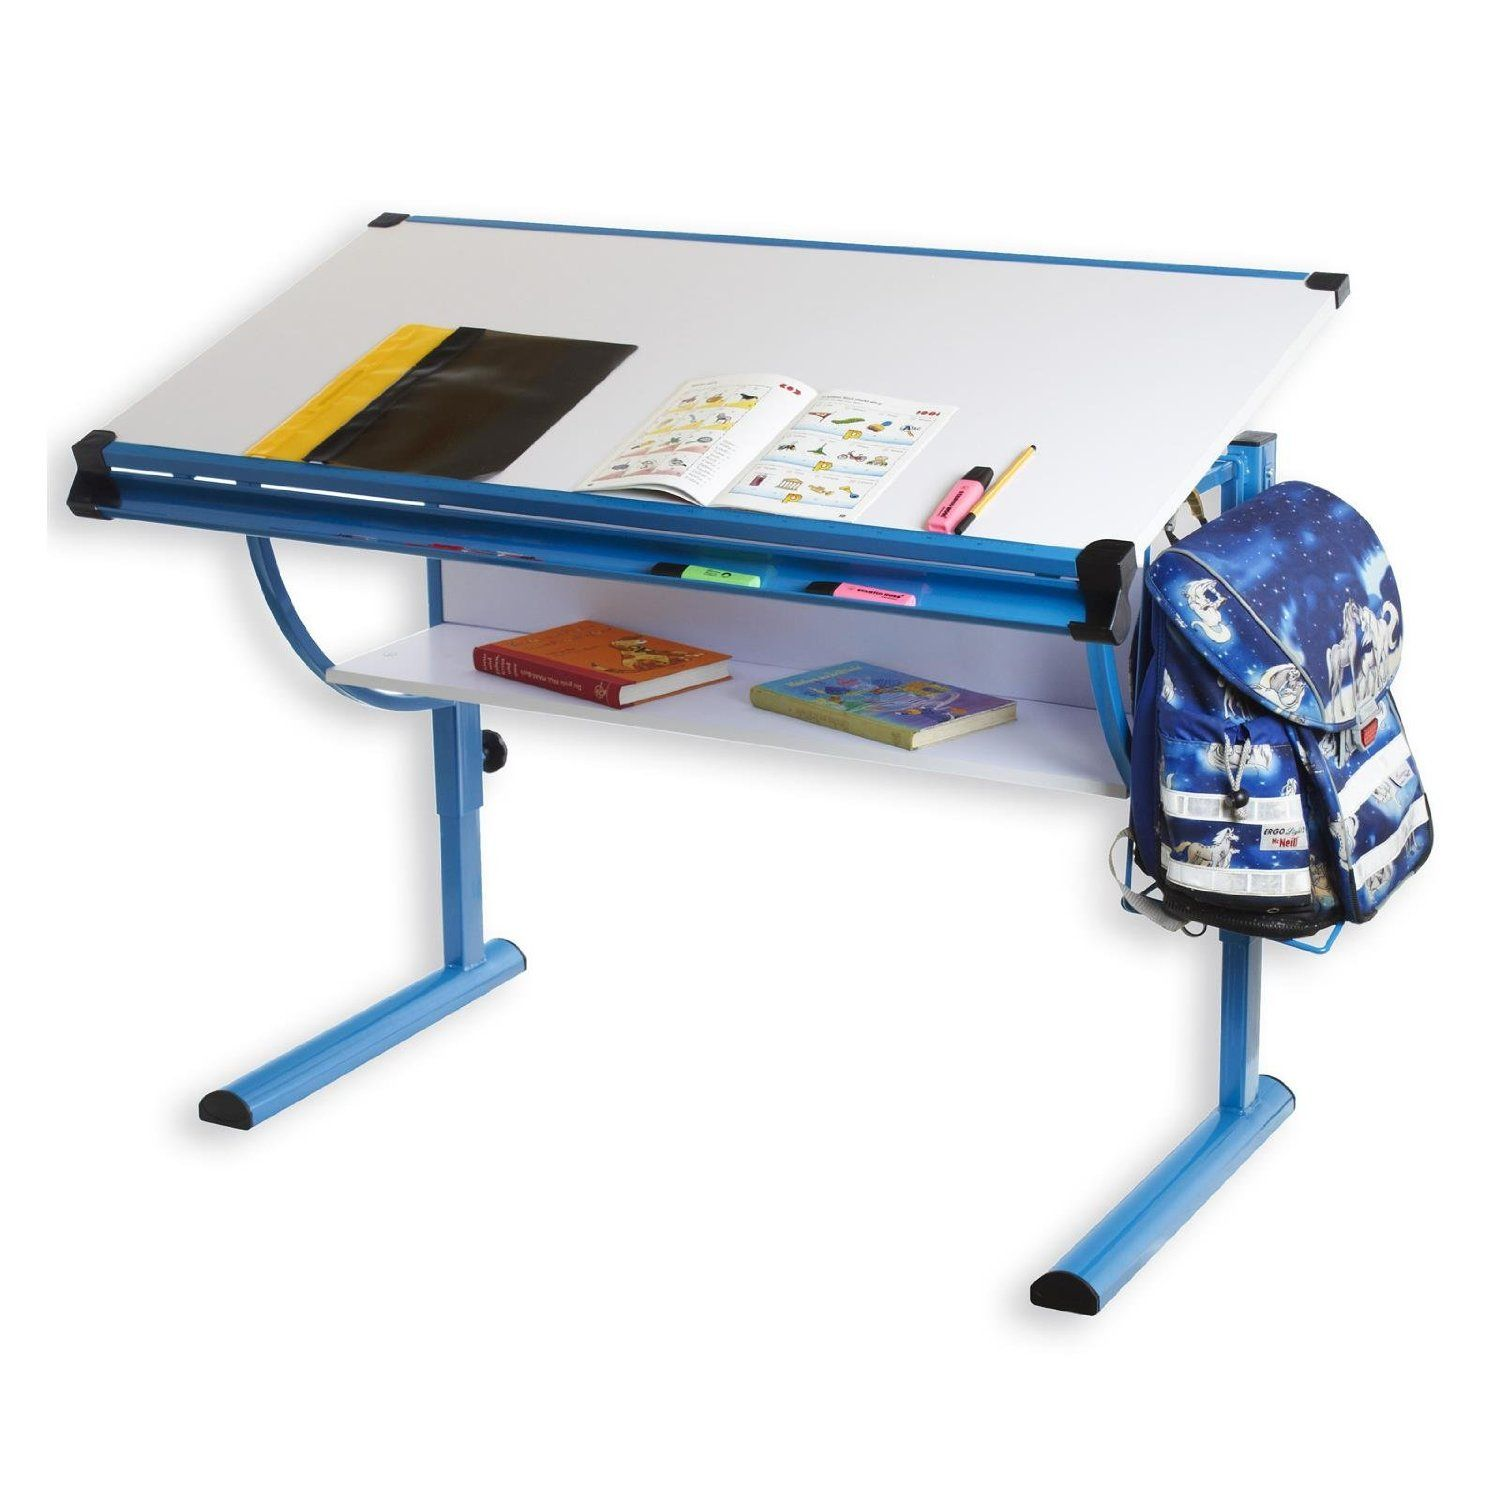 Kinderschreibtisch Blue Höhenverstellbar Und Neigungsverstellbar Amazon De Küche Haushalt New Homes Drafting Desk Home